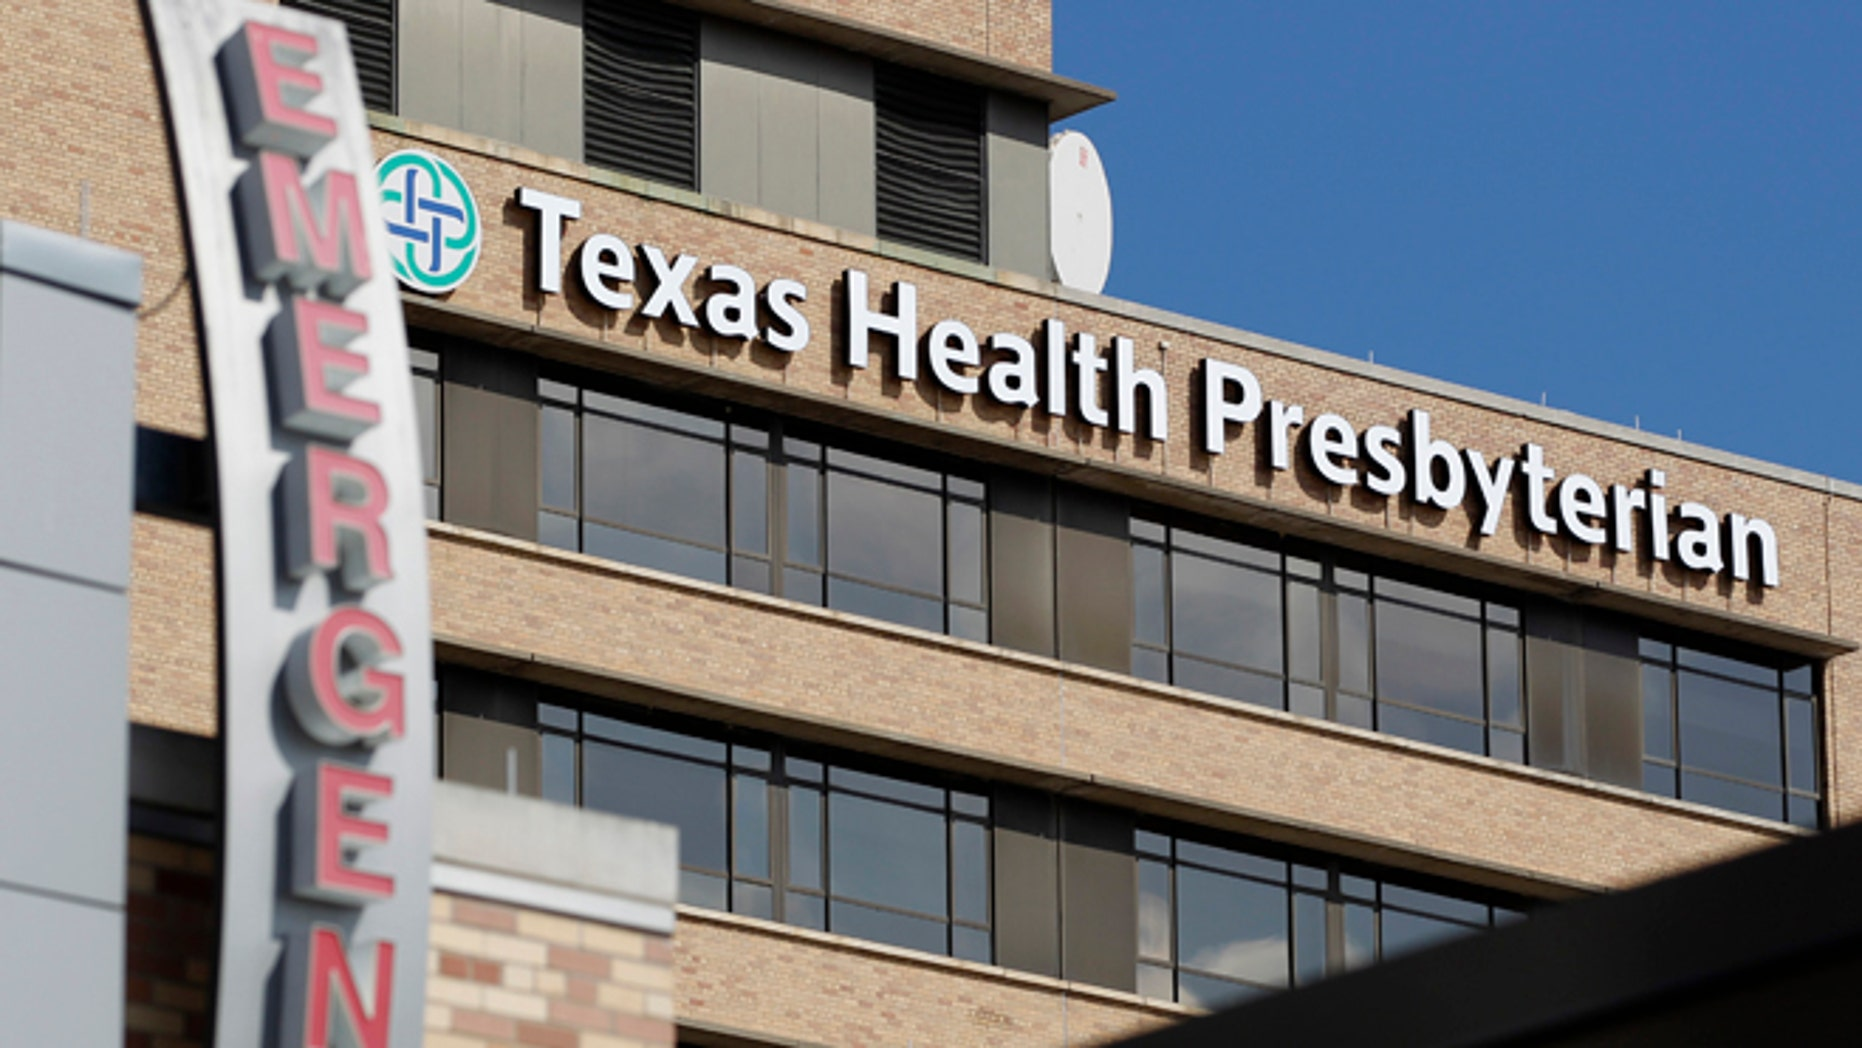 A general view of Texas Health Presbyterian Hospital in Dallas, Texas October 1, 2014. U.S. health experts in Dallas on Wednesday were examining how many people may have been exposed to Ebola, just one day after the first case of the deadly virus was diagnosed in the United States, the nation's top public health official said.  REUTERS/Mike Stone